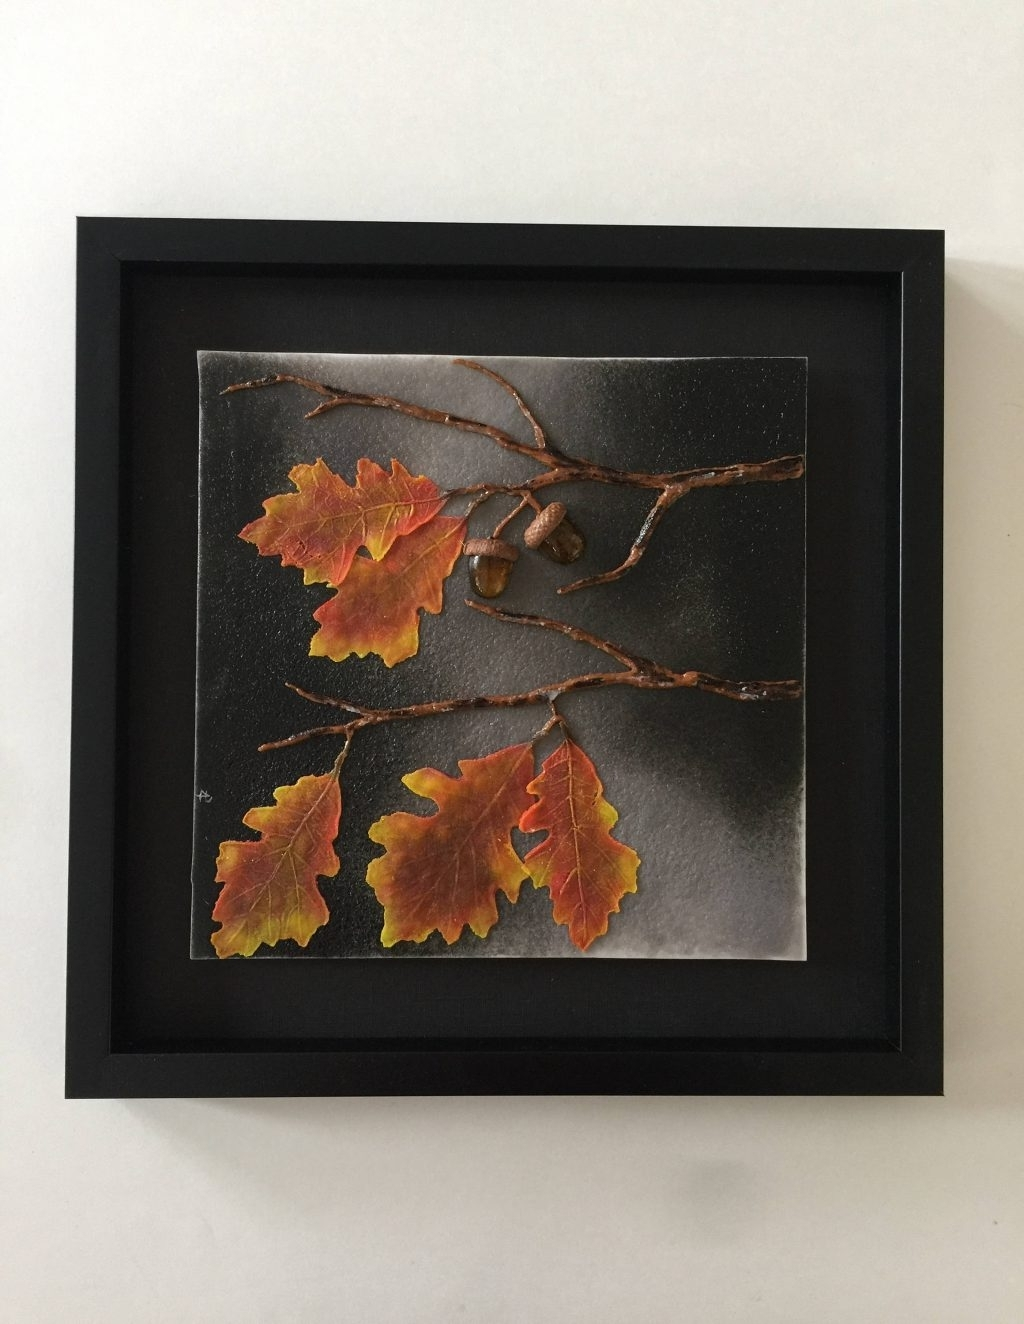 Most Popular Cool Design Fused Glass Wall Art Together With Handmade Oak Tree Regarding Fused Glass Wall Art Devon (View 5 of 15)